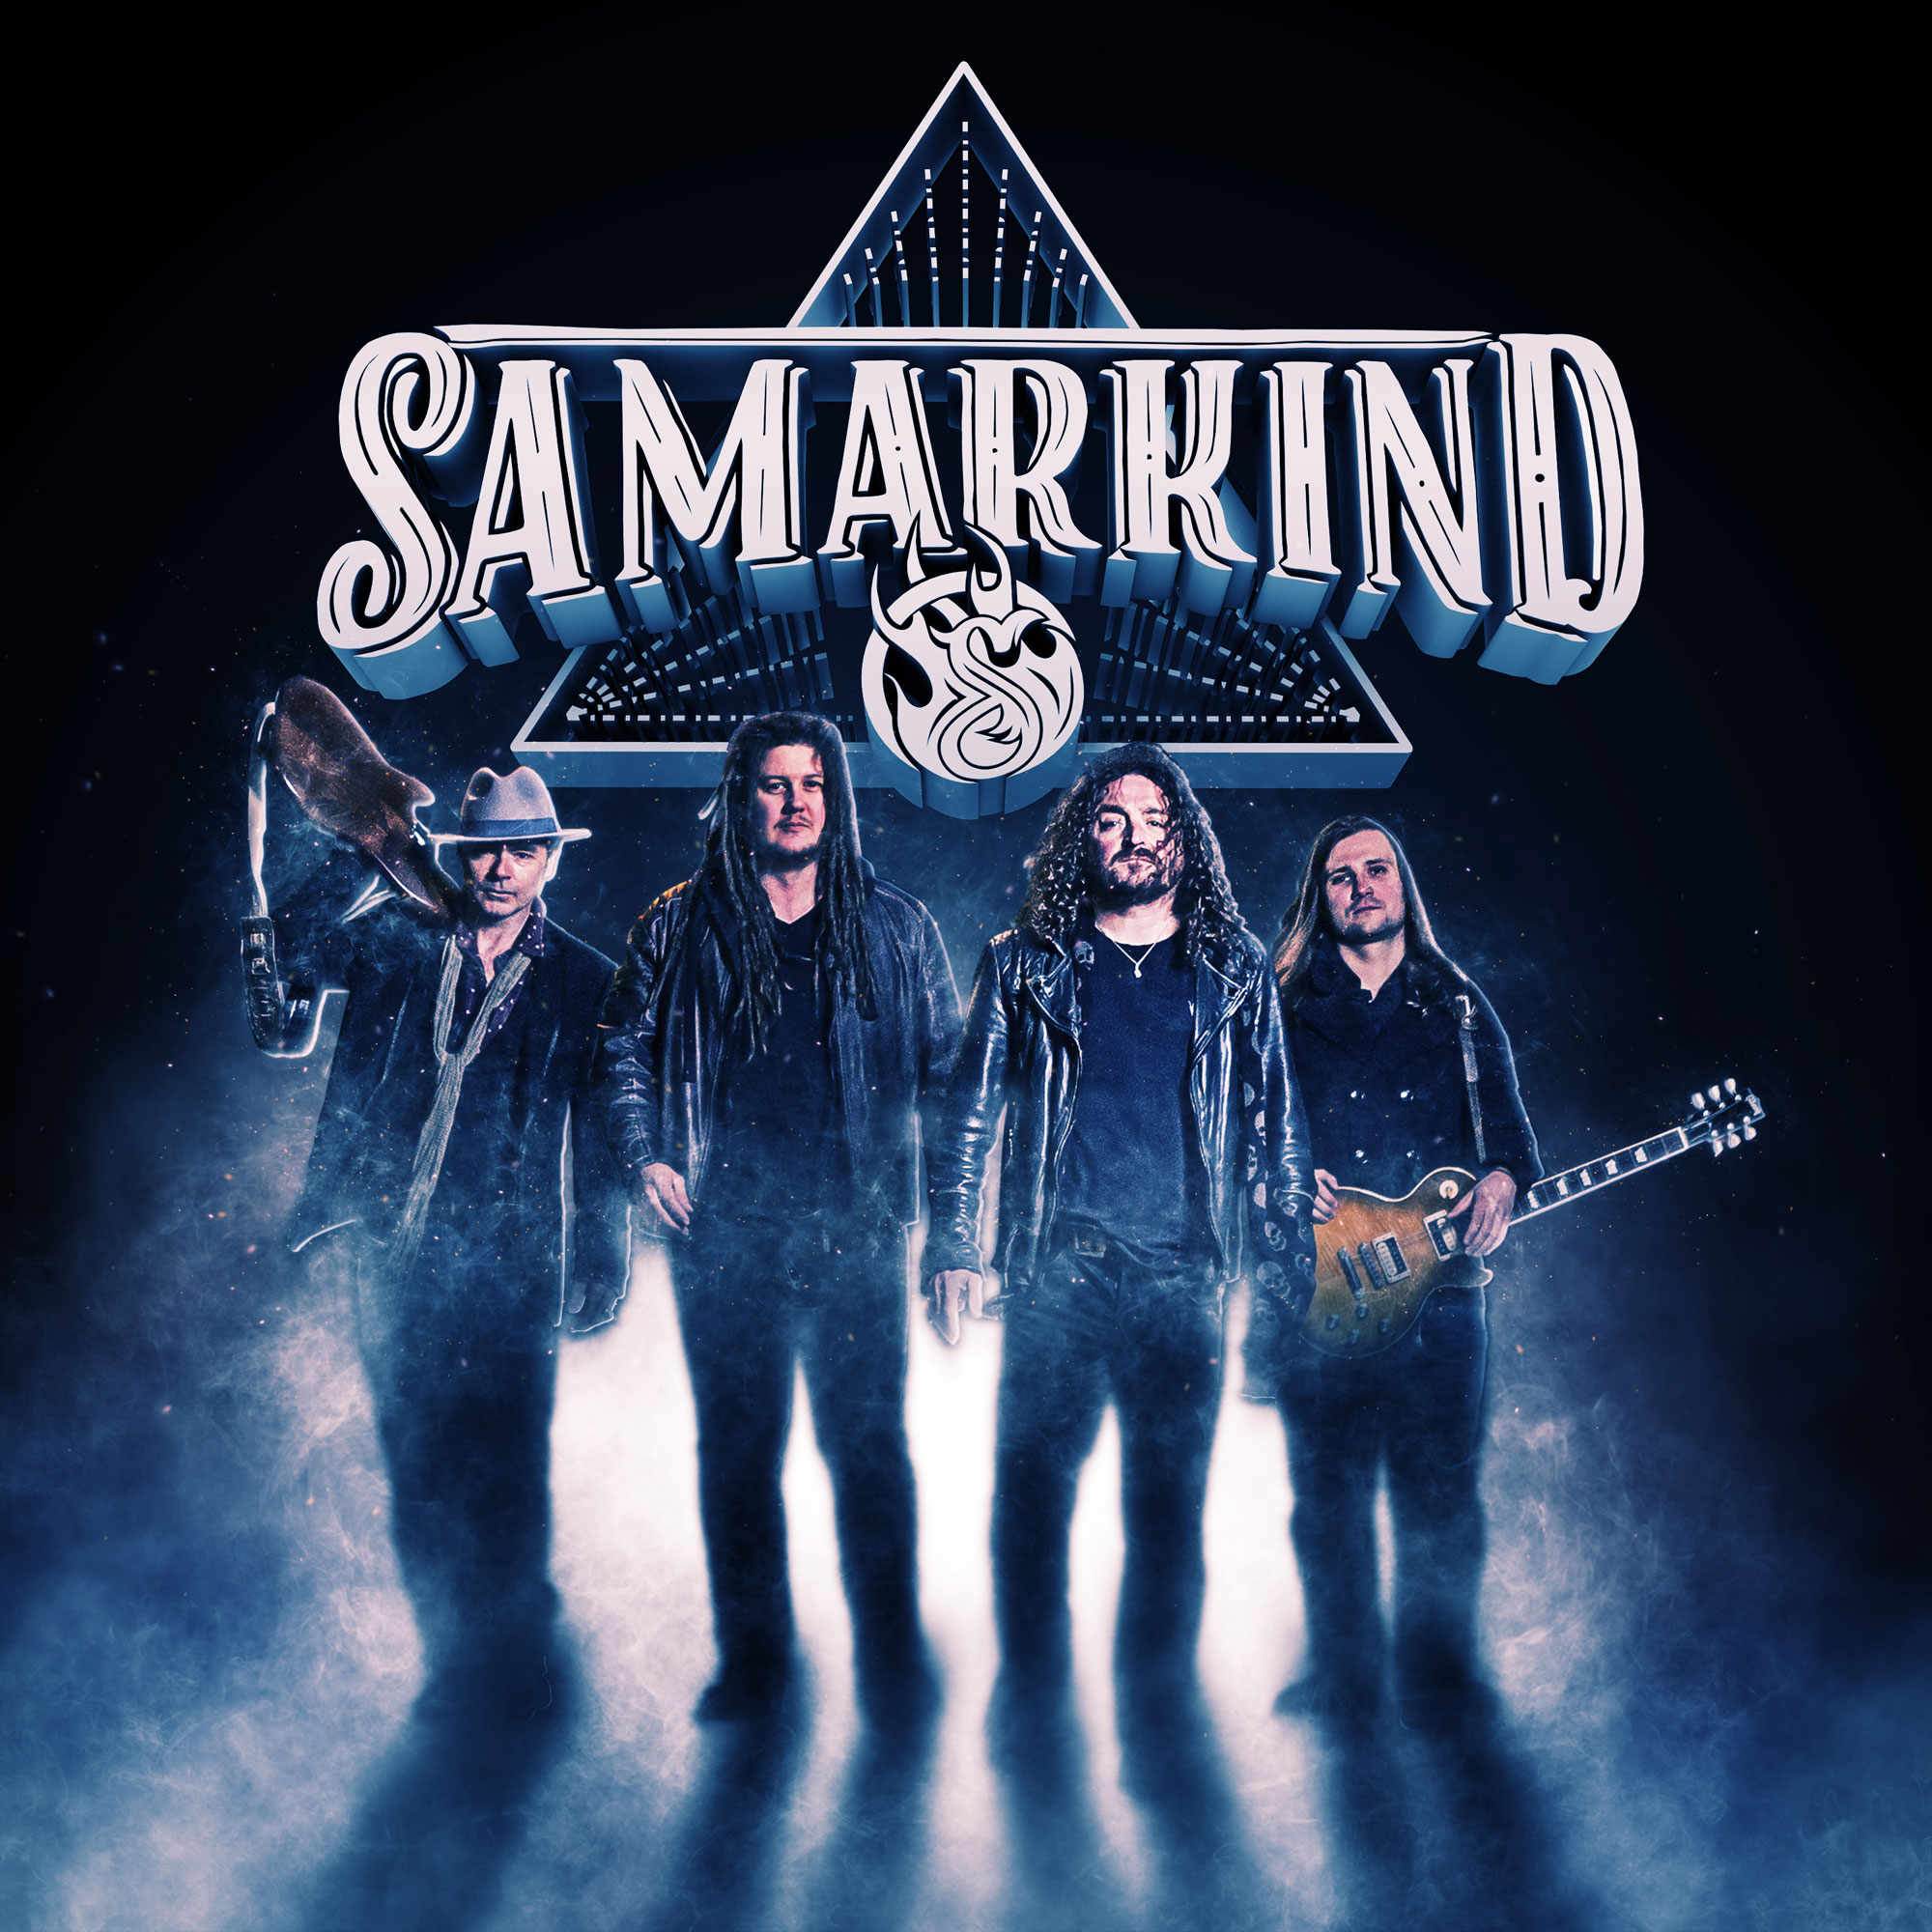 Samarkind Fire and Blood (new single)